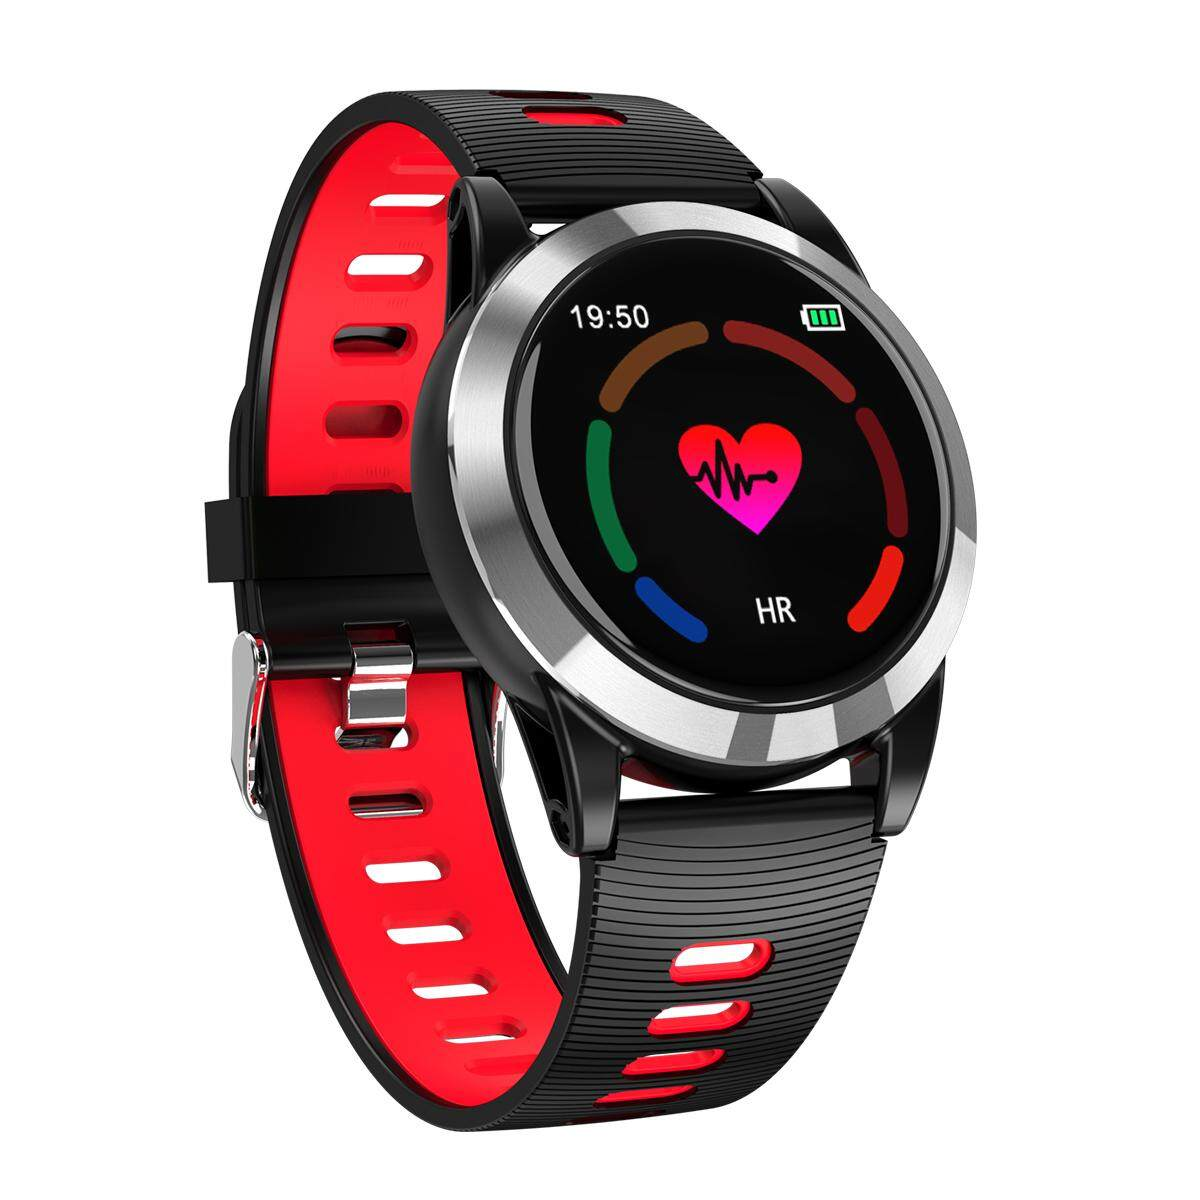 Buy Sell Cheapest Smartwatch Smart Watch Best Quality Product Q18 Dz09 U9 Pro Full Black 2018 R15 Heart Rate Fitness Bracelet Sleep Monitor Tracker Blood Pressure Color